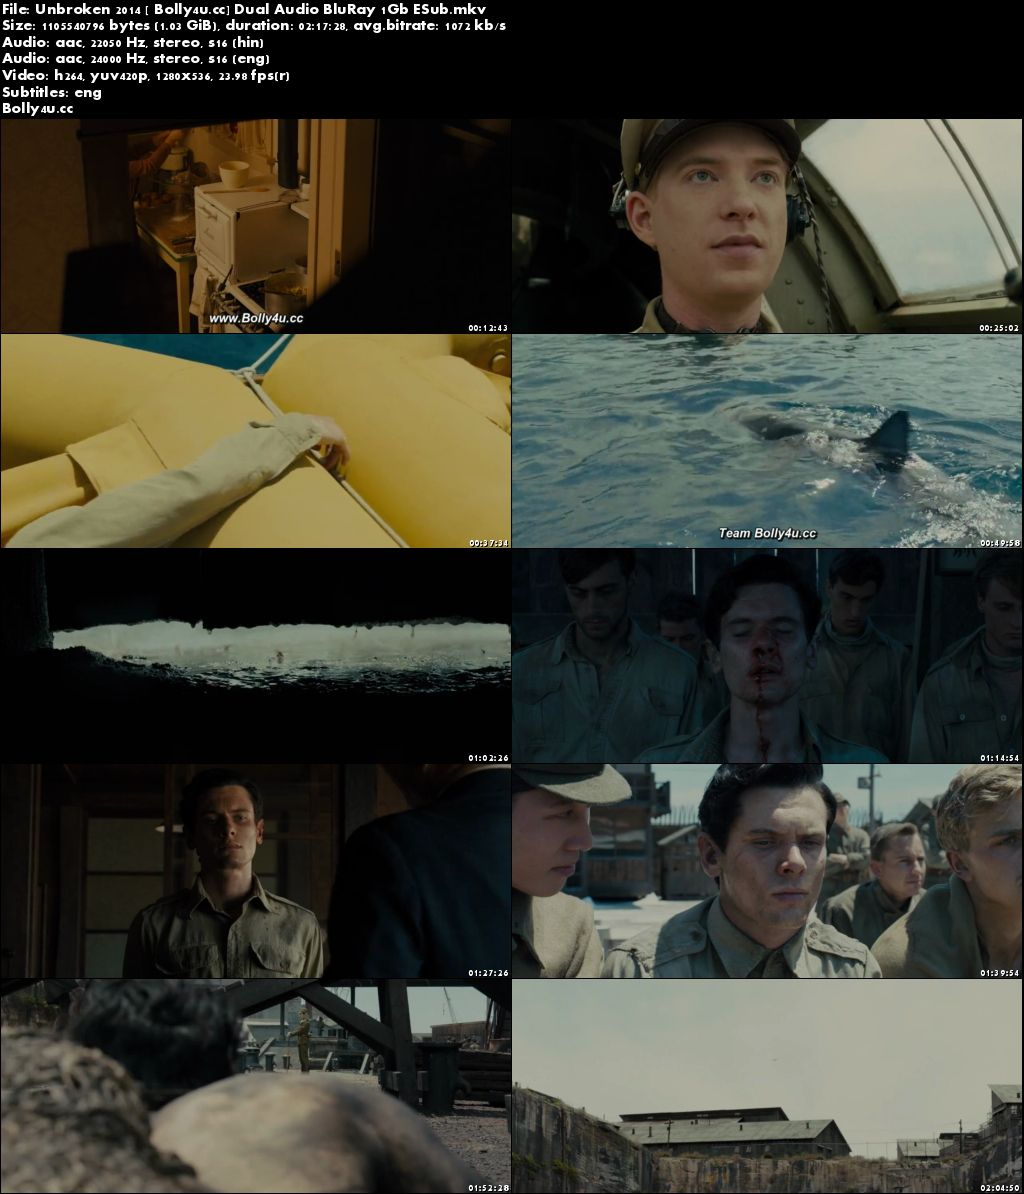 Unbroken 2014 BluRay 1GB Hindi Dual Audio 720p ESub Download